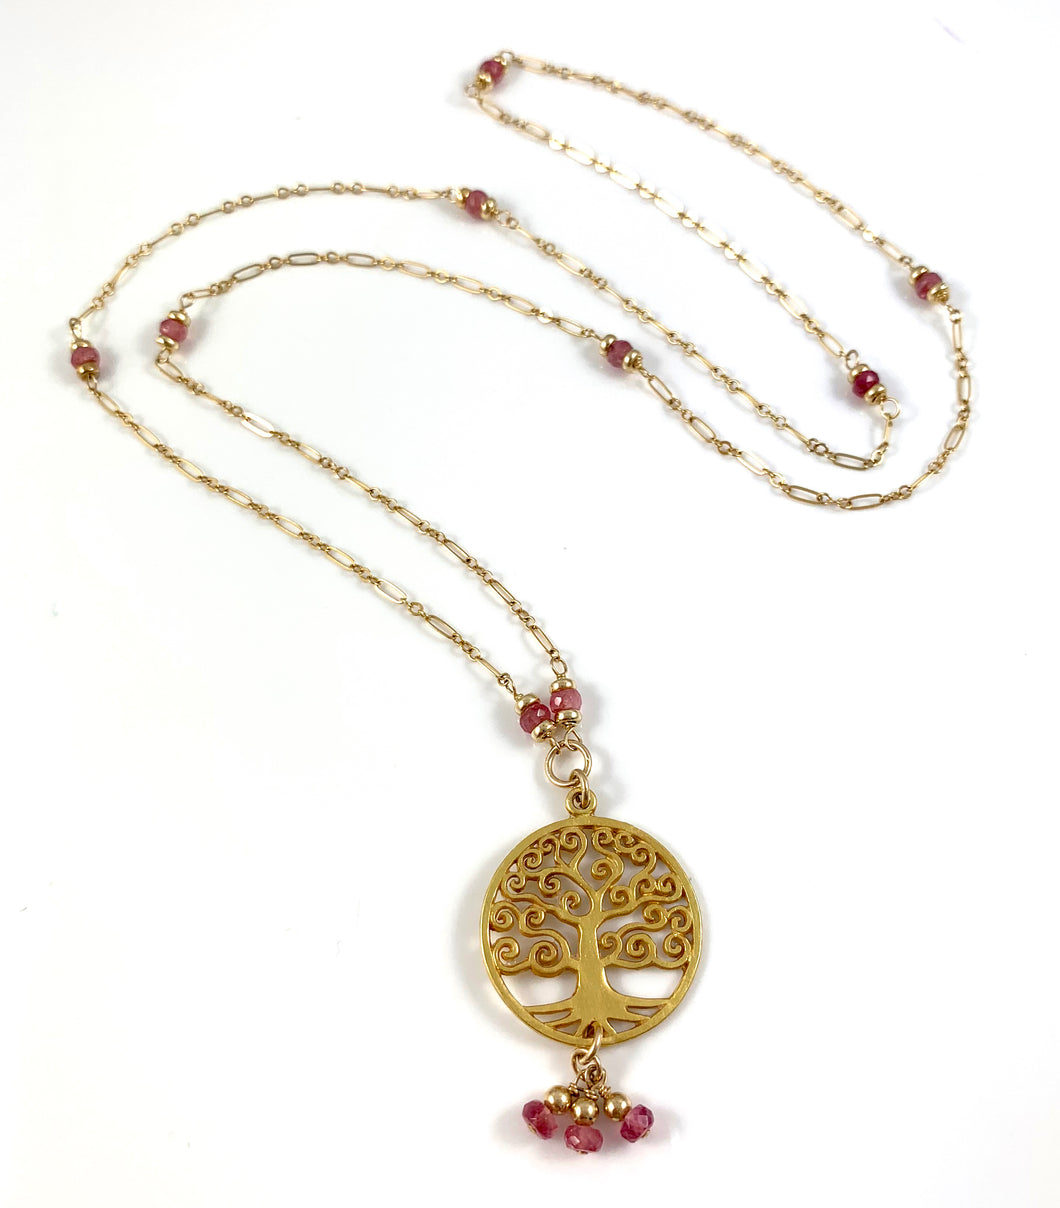 Lauren Libra Birthstone Pink Tourmaline Tree of Life Pendant Necklace 28